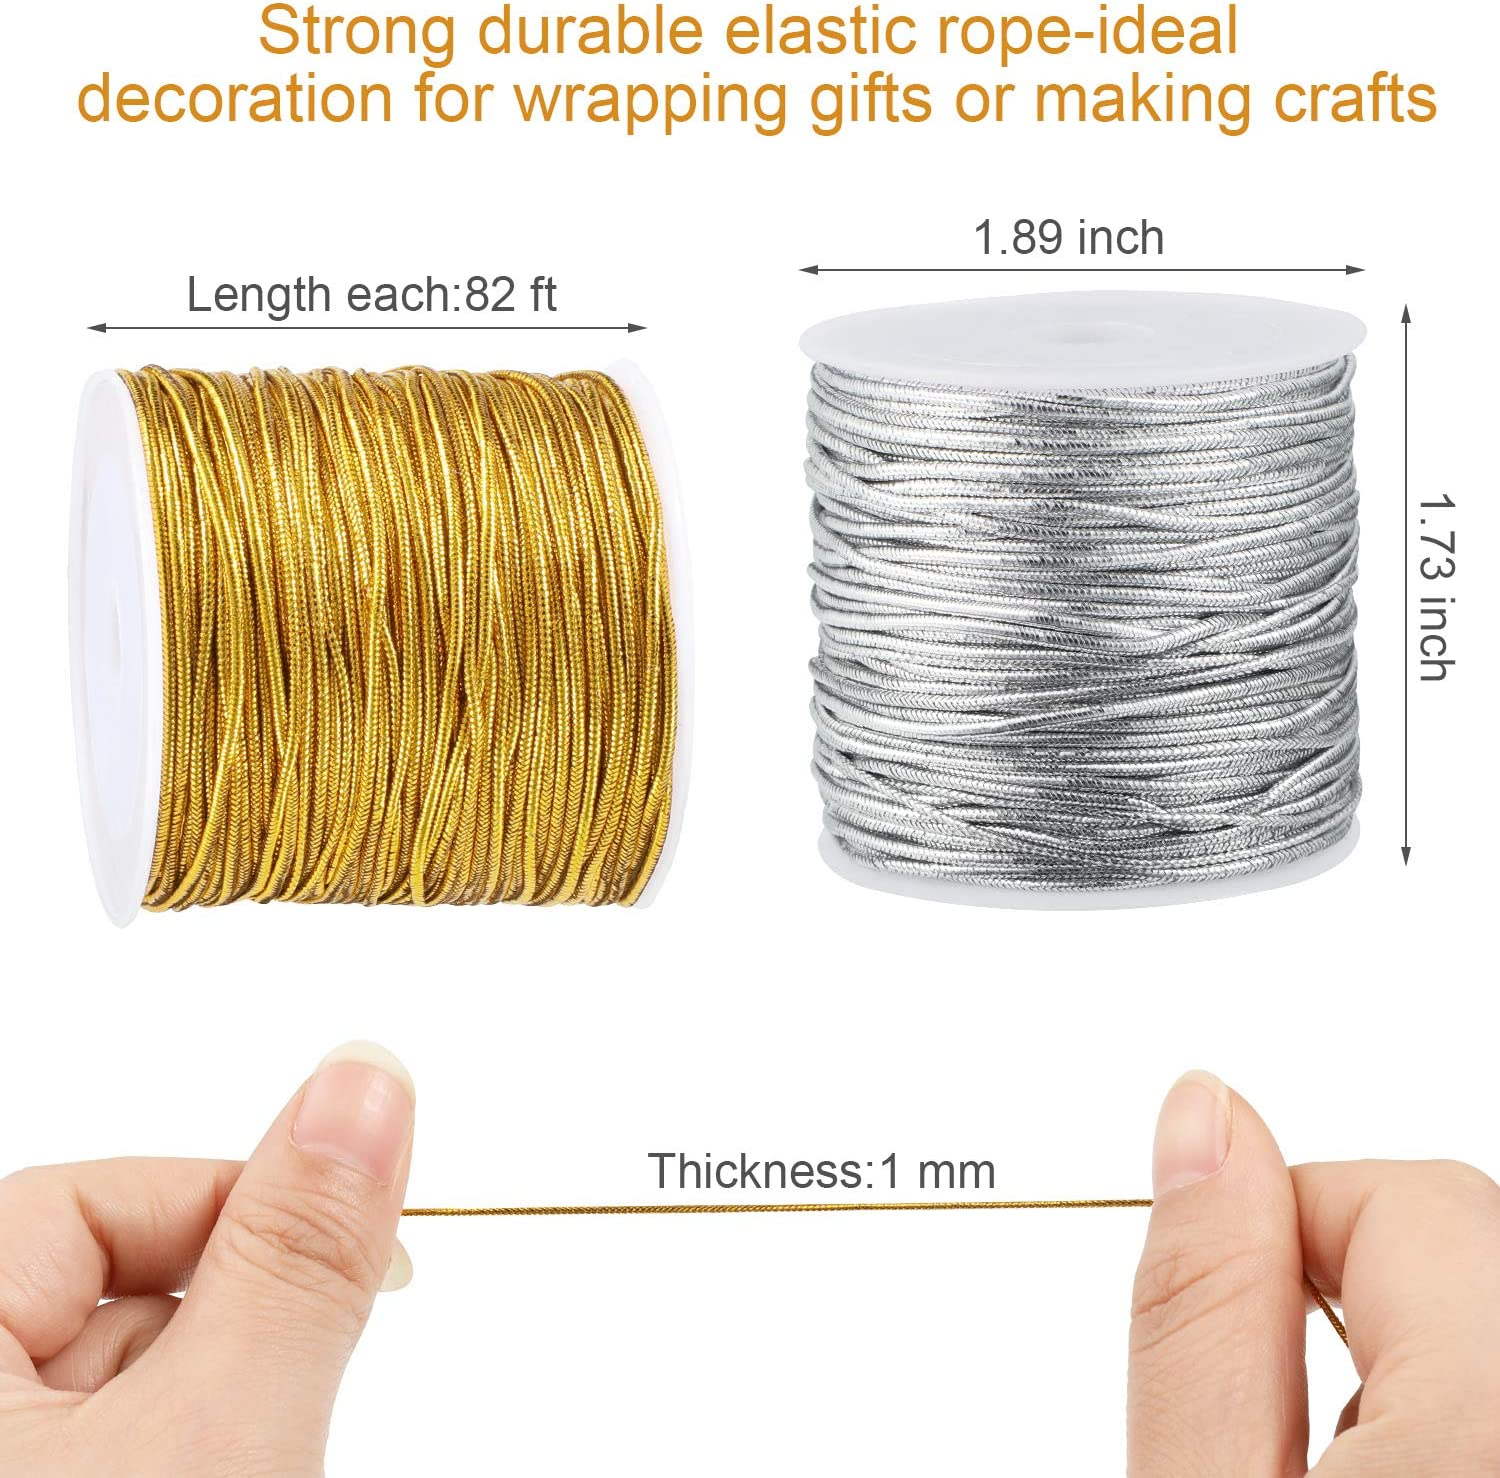 1 mm 55 Yards 2 Rolls Metallic Elastic Cords Stretch Cord Ribbon Metallic Tinsel Cord Rope for Craft Making Gift Wrapping Silver